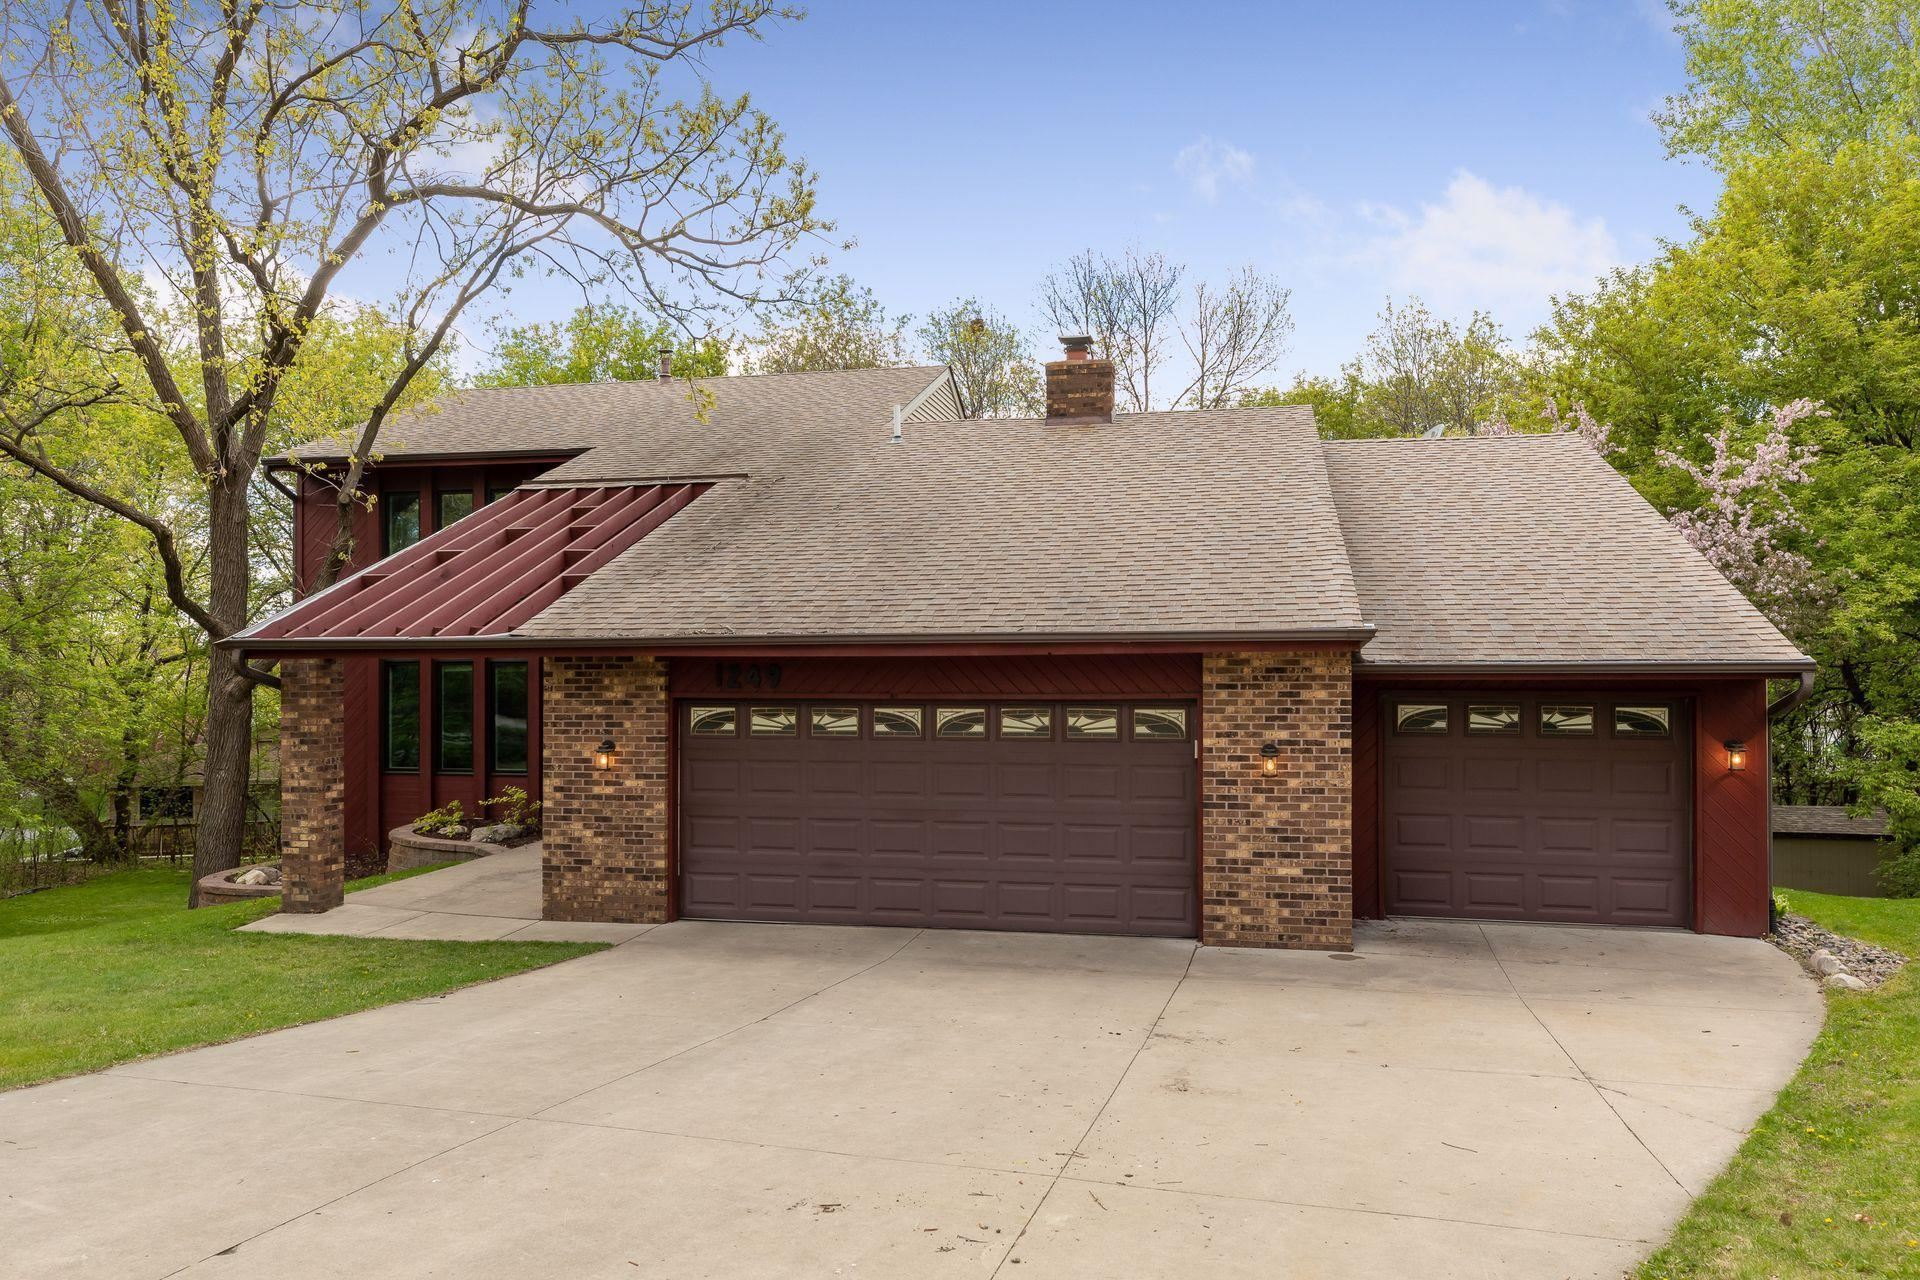 Photo of 1249 Mourning Dove Court, Eagan, MN 55123 (MLS # 5743597)